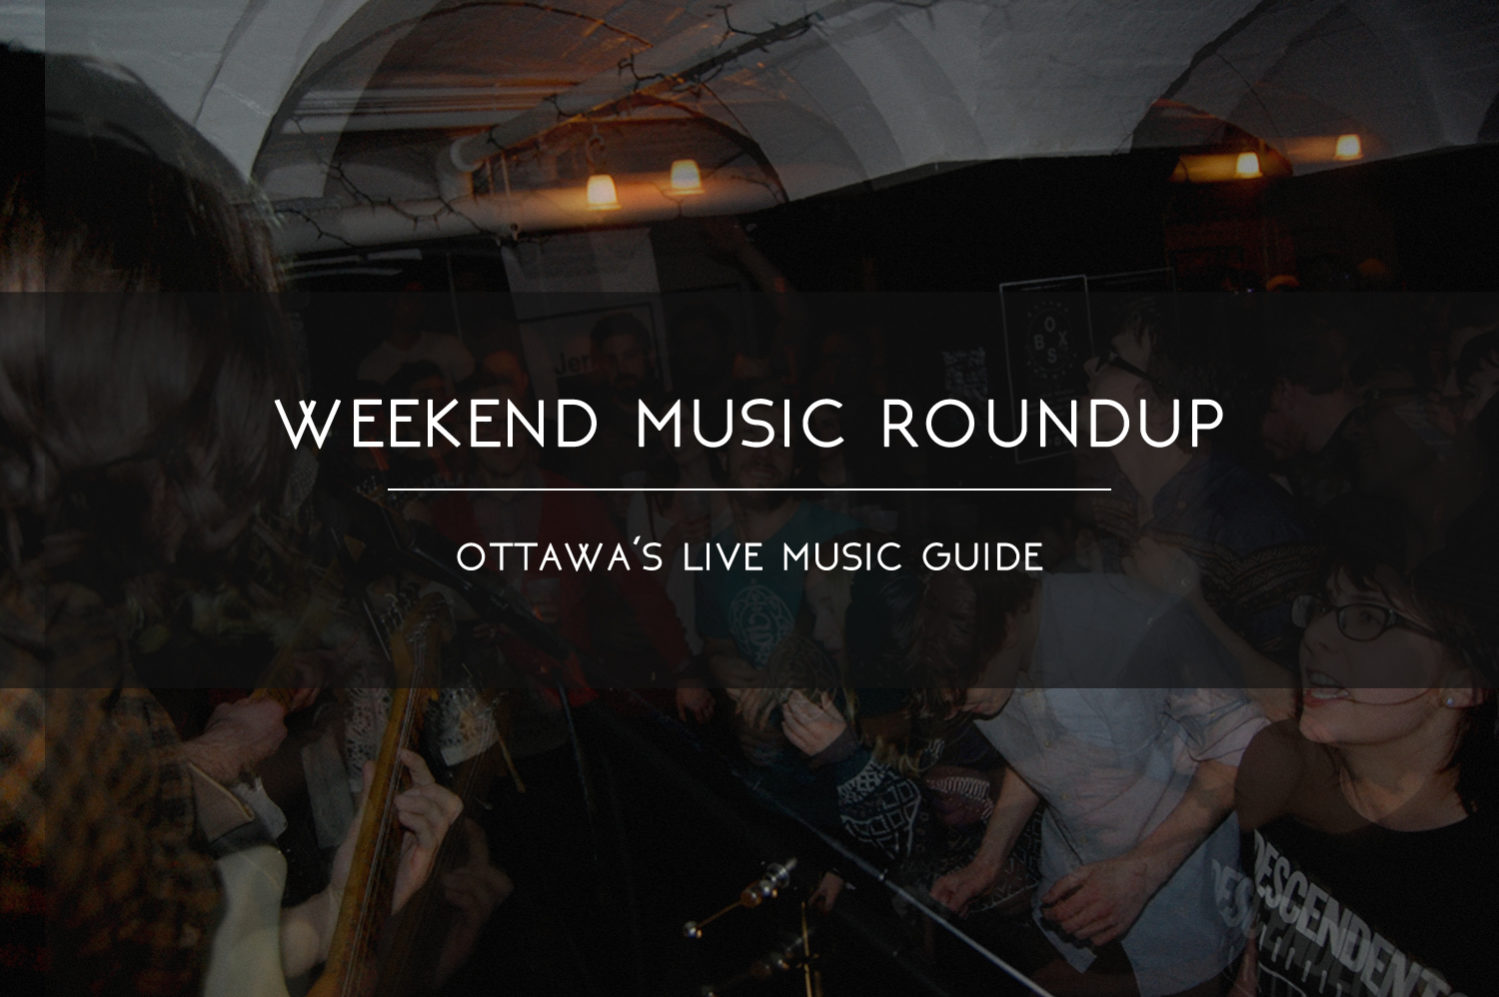 ottawa listings, events, roundup, concerts, music, shows